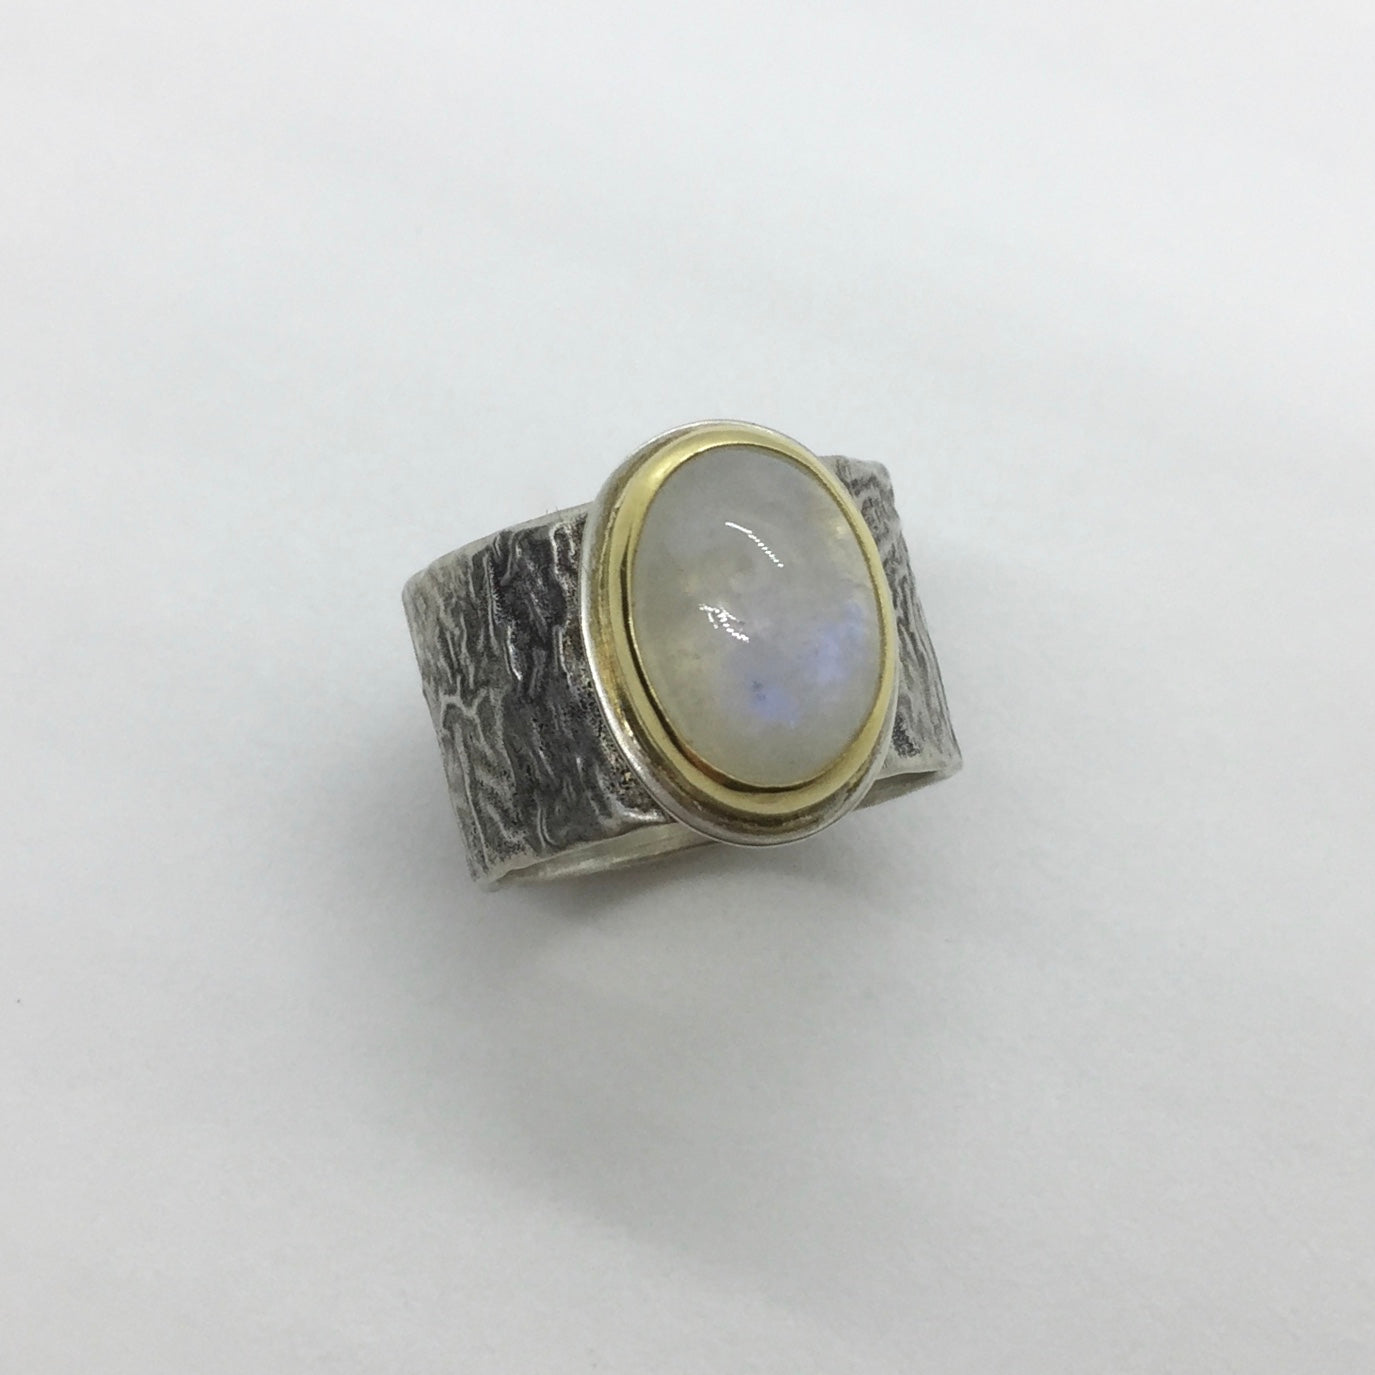 Rainbow Moonstone set in 18k gold bezel and reticulated silver band